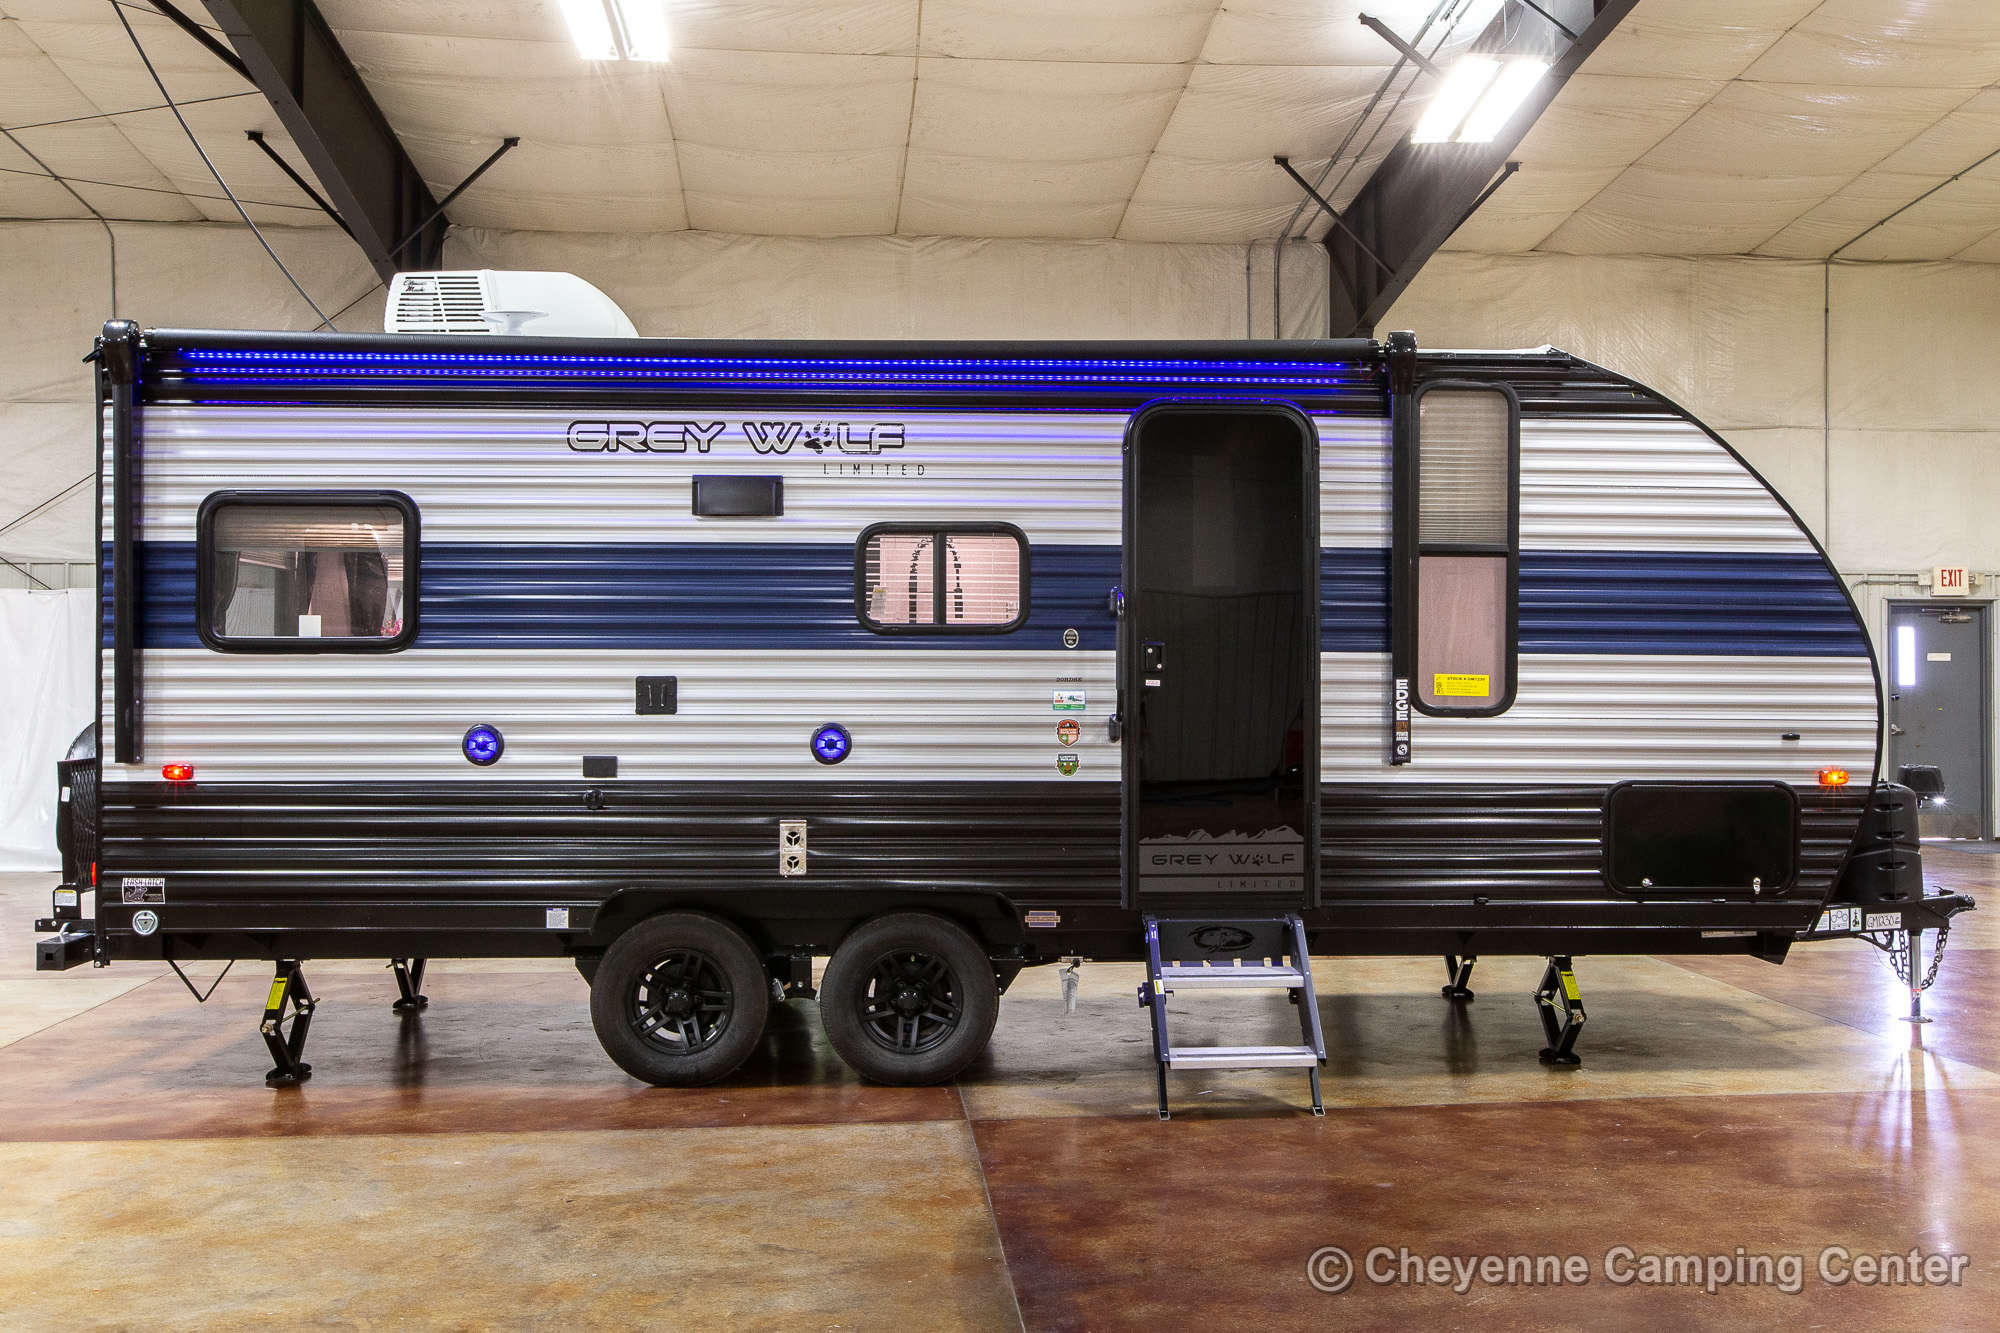 2021 Forest River Cherokee Grey Wolf 20RDSE Travel Trailer Exterior Image